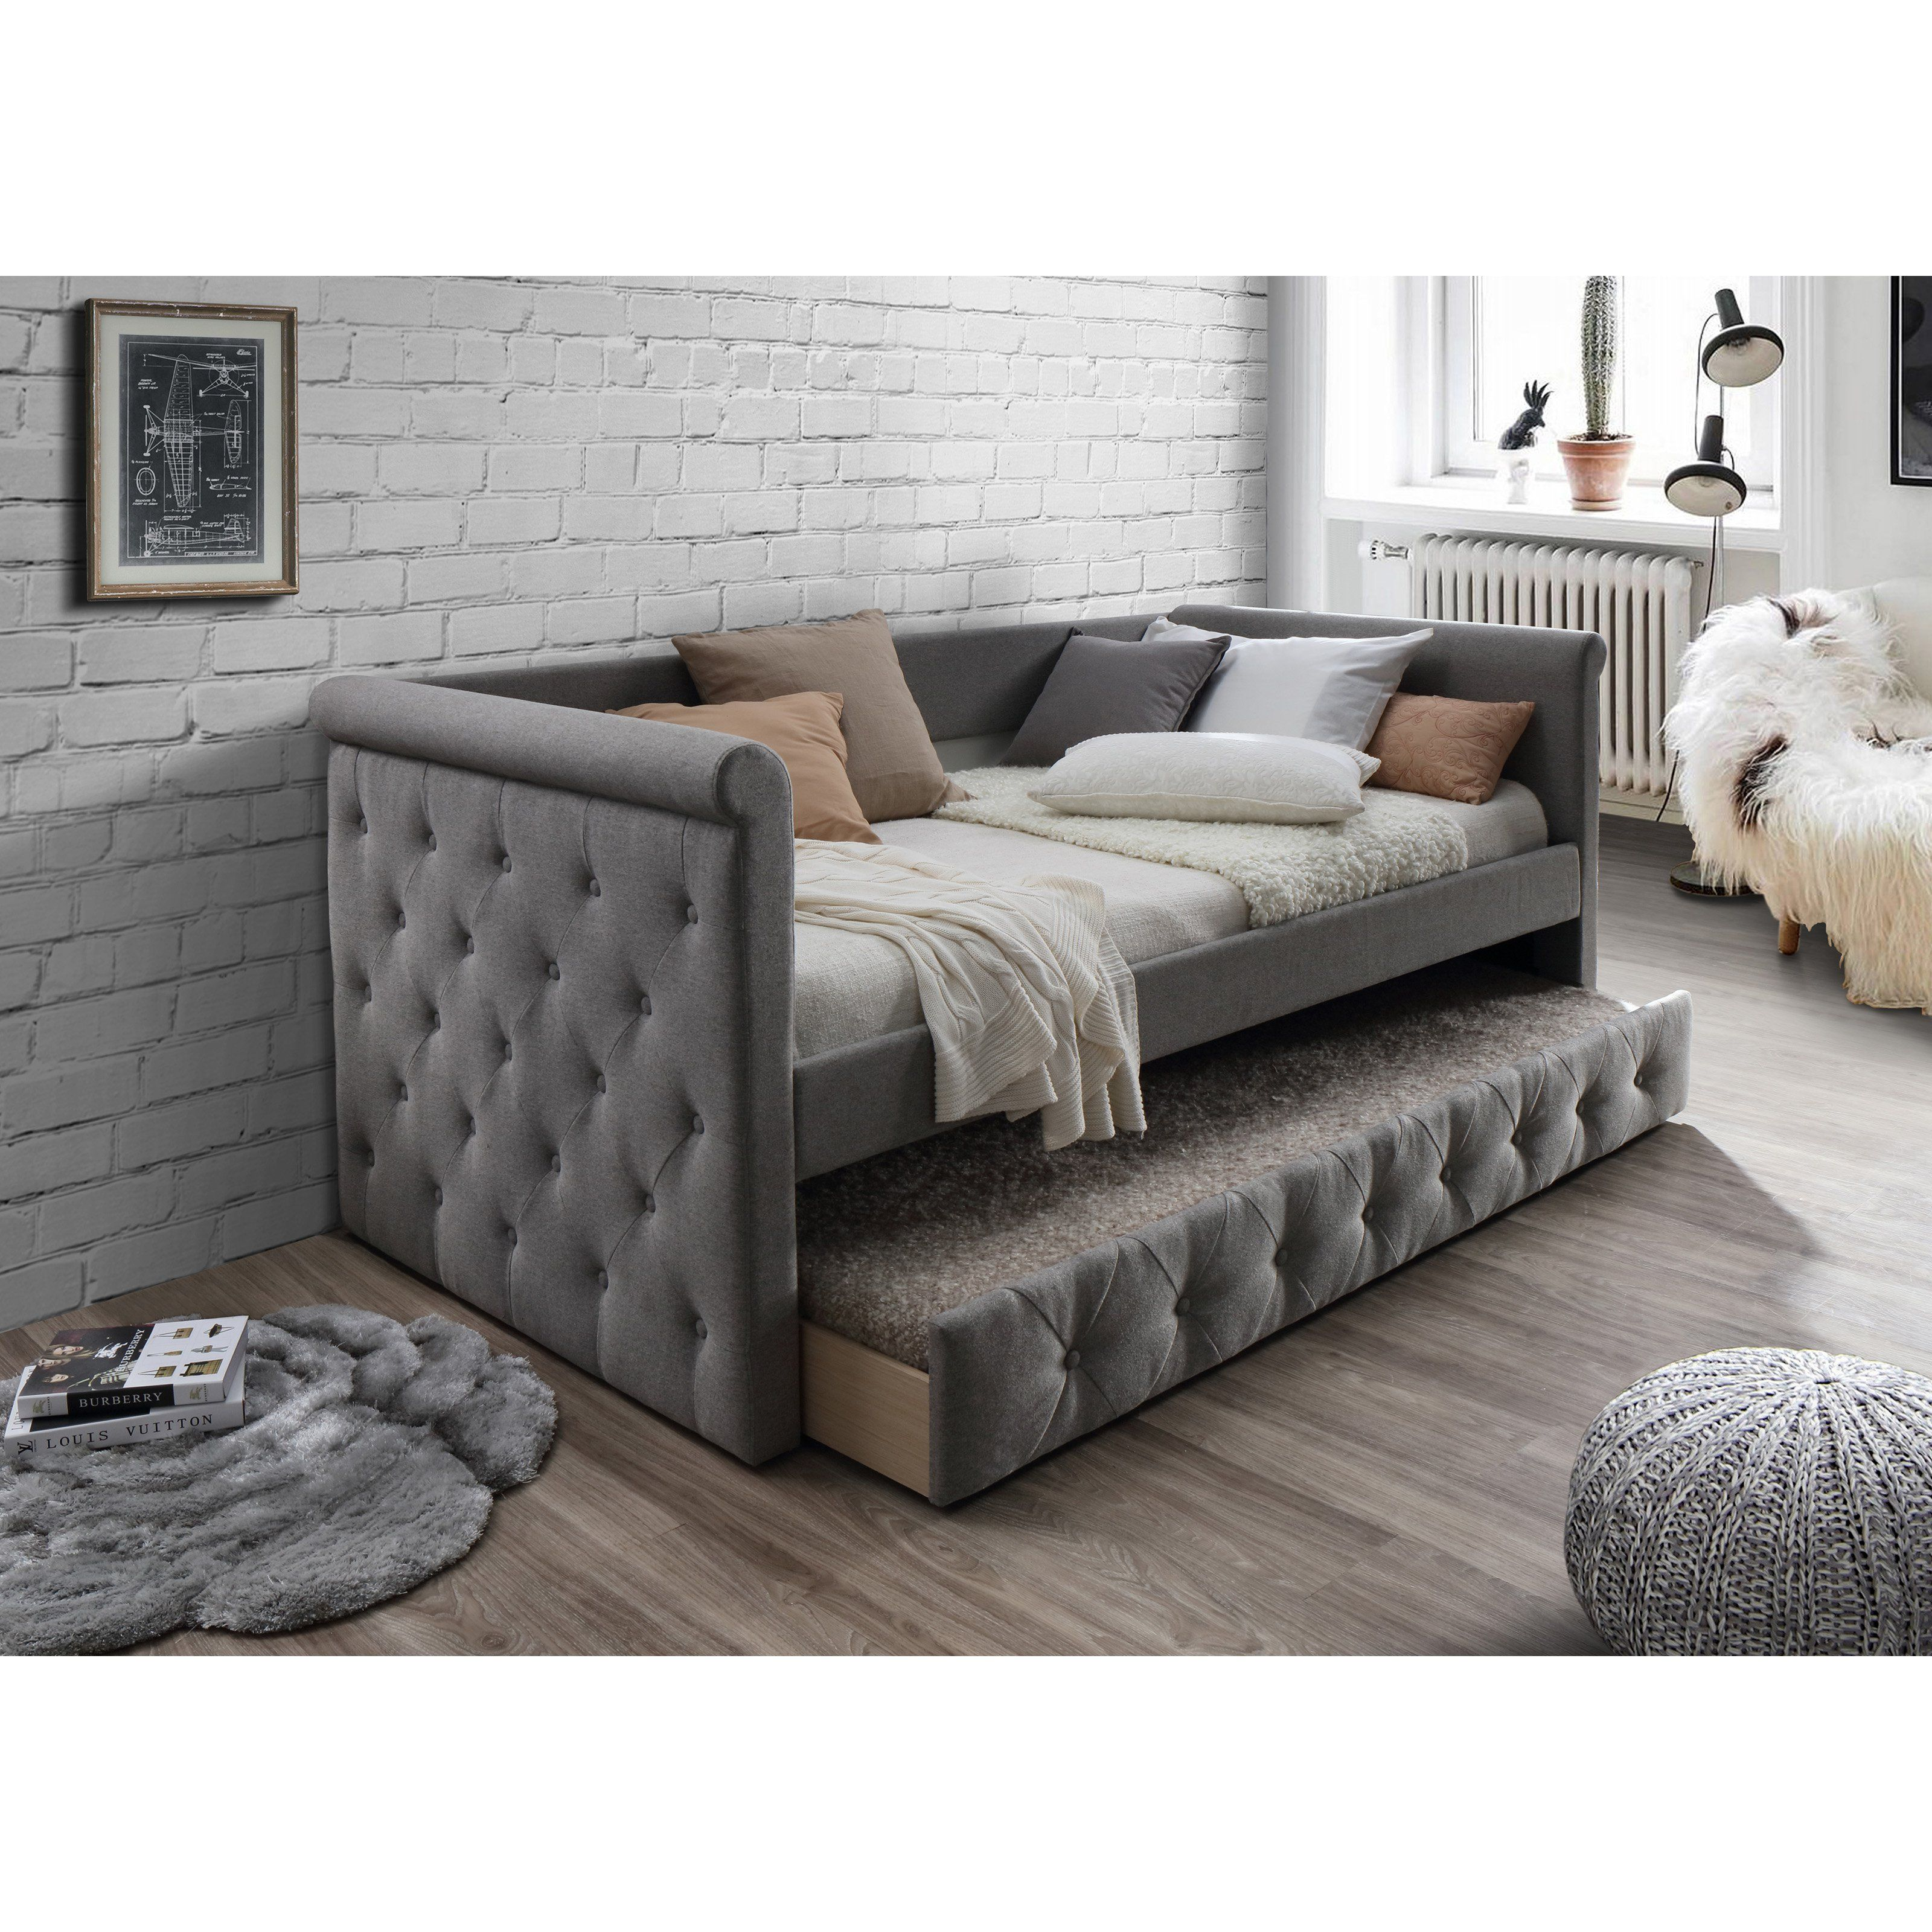 Home Source Industries Tufted Upholstered Daybed with